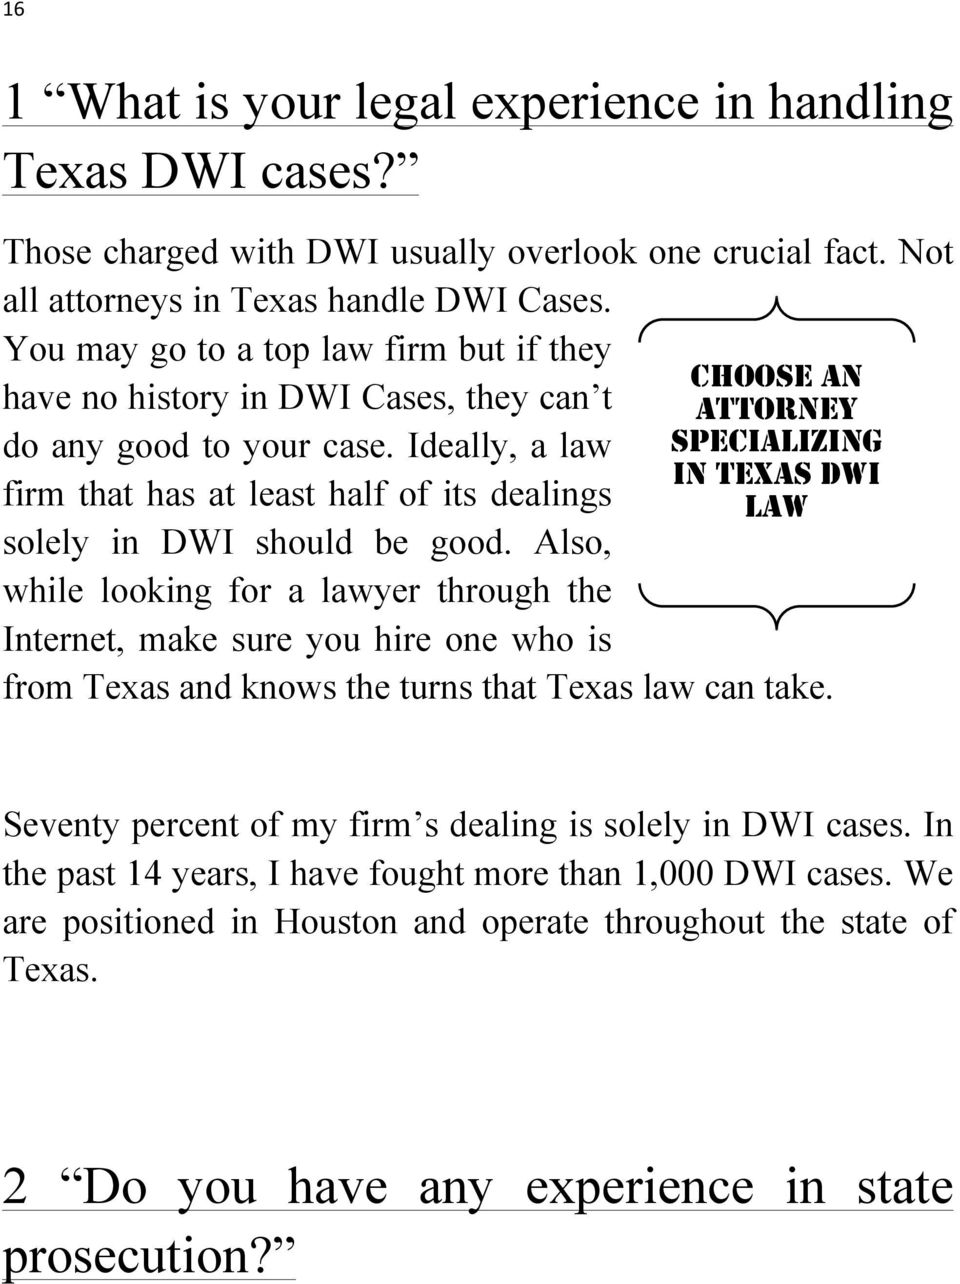 Also, while looking for a lawyer through the Internet, make sure you hire one who is from Texas and knows the turns that Texas law can take.